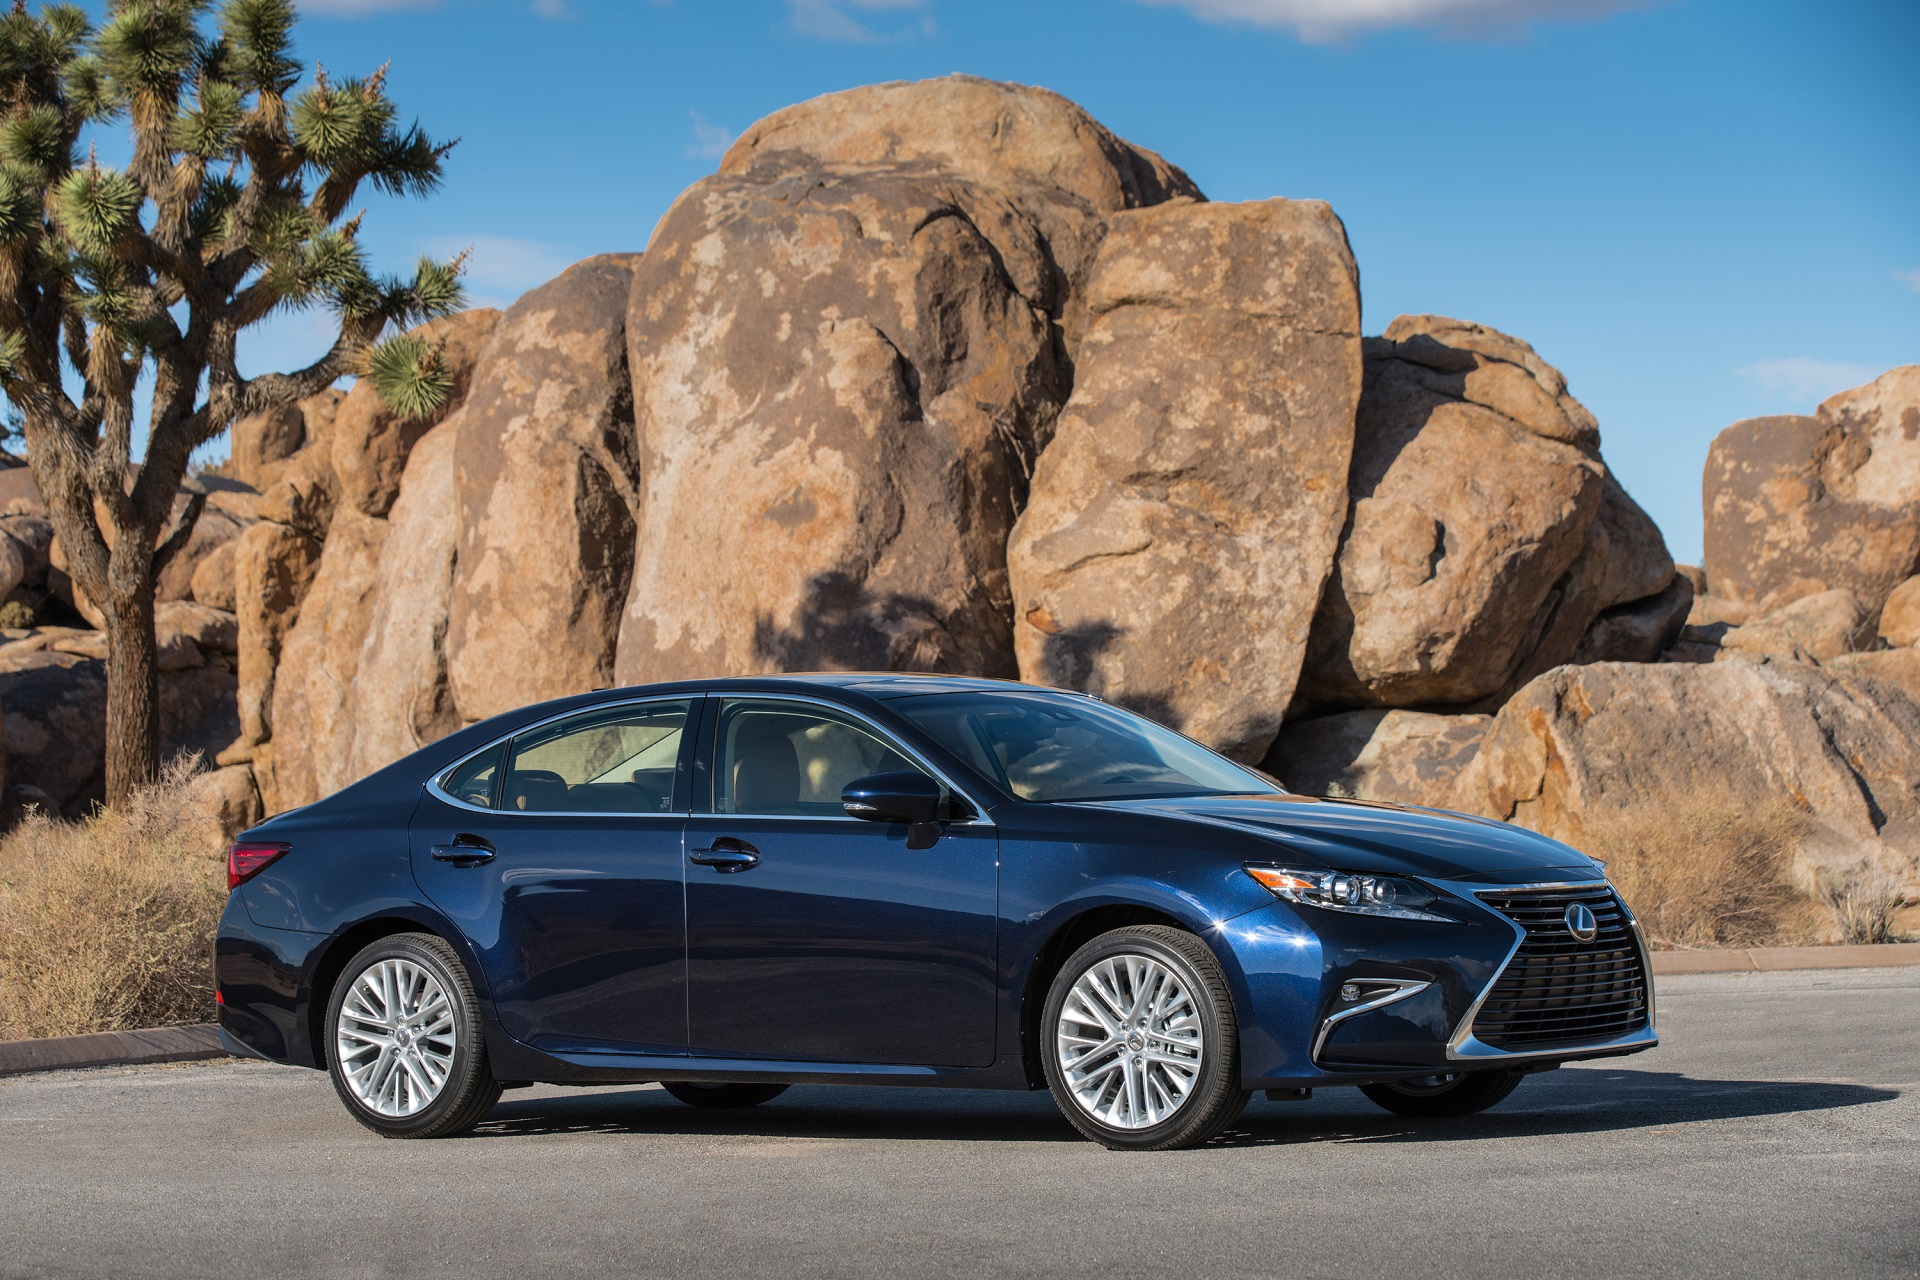 2018 Lexus ES Review, Ratings, Specs, Prices, and Photos - The Car Connection